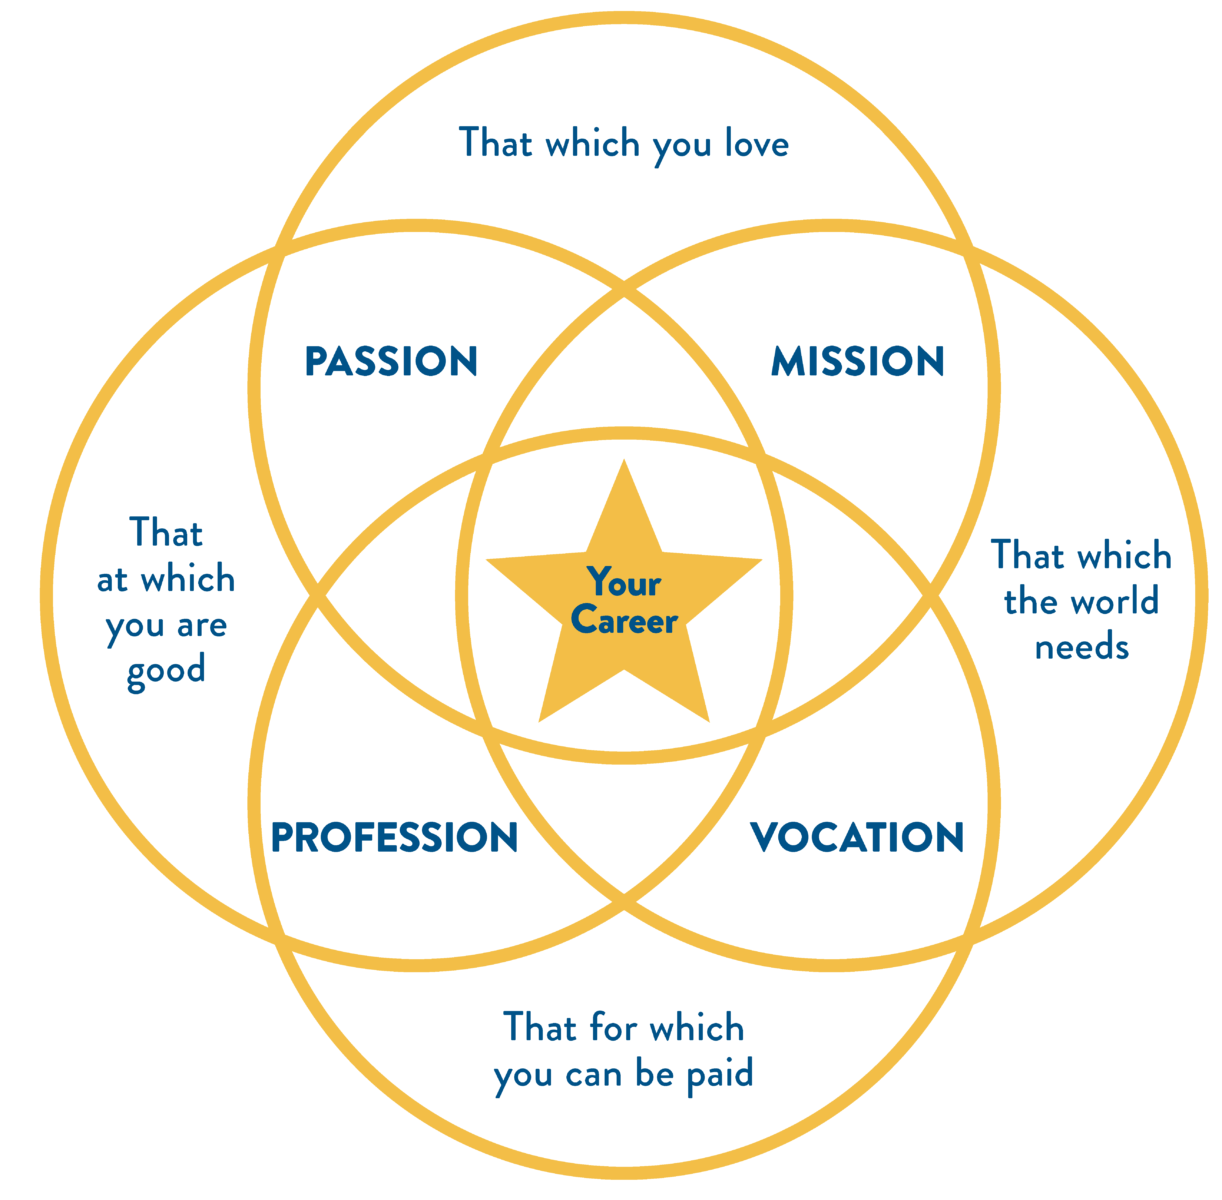 It shows the overlaps between Passion, Mission, Vocation and Profession to reflect that which you love, that which the world needs, that for which you can be paid and that at which you are good, leading you to the perfect intersection of your chosen career.